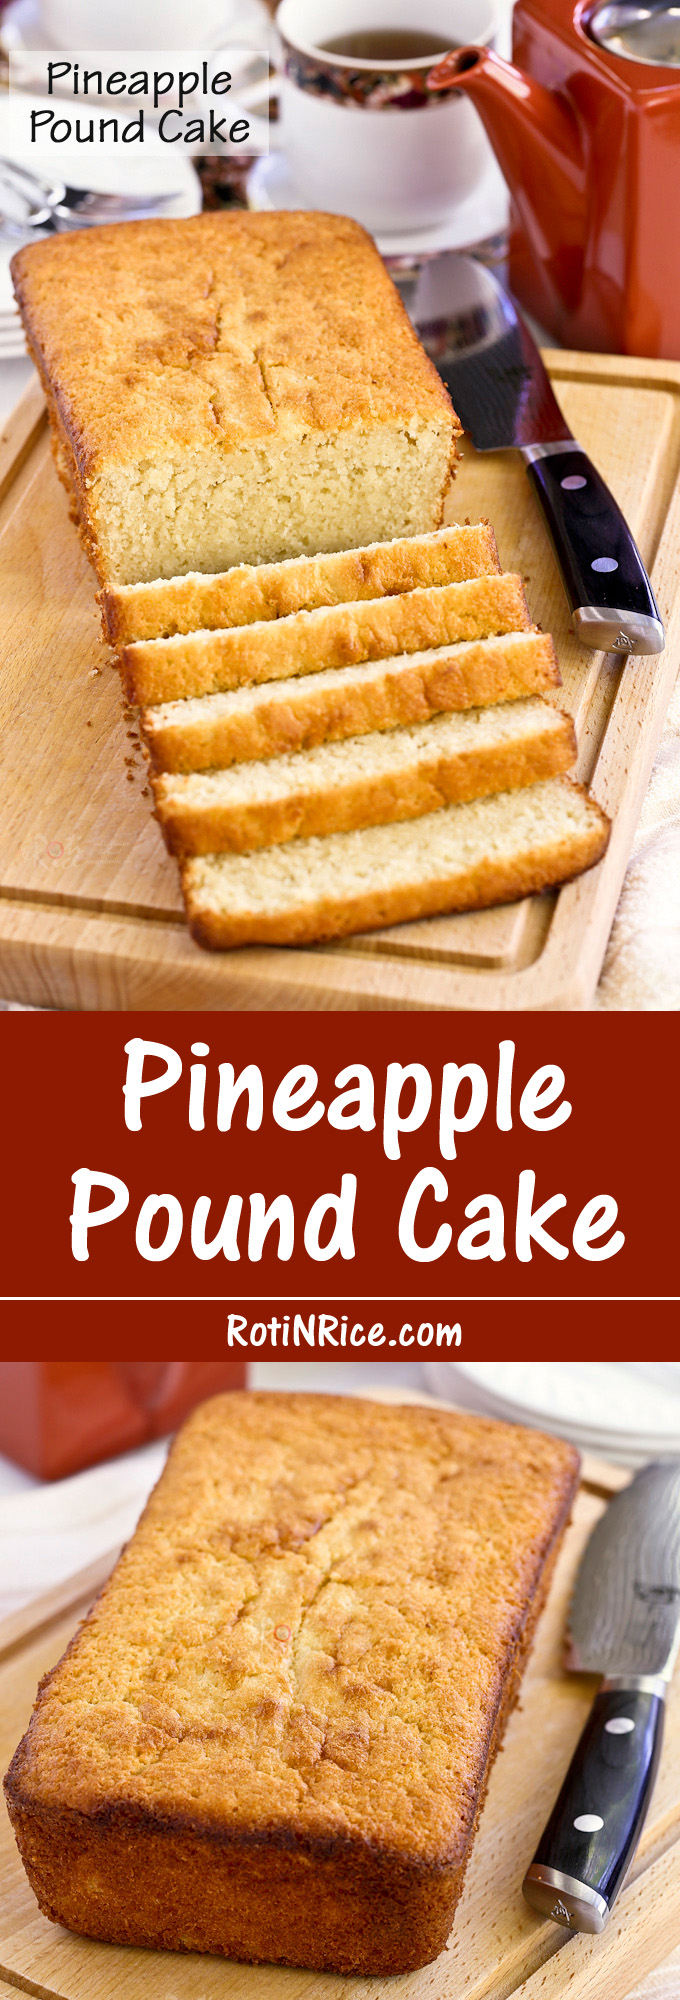 This Pineapple Pound Cake is made with pineapple puree for a finer and smoother textured pineapple cake. It is deliciously moist and tender. | RotiNRice.com